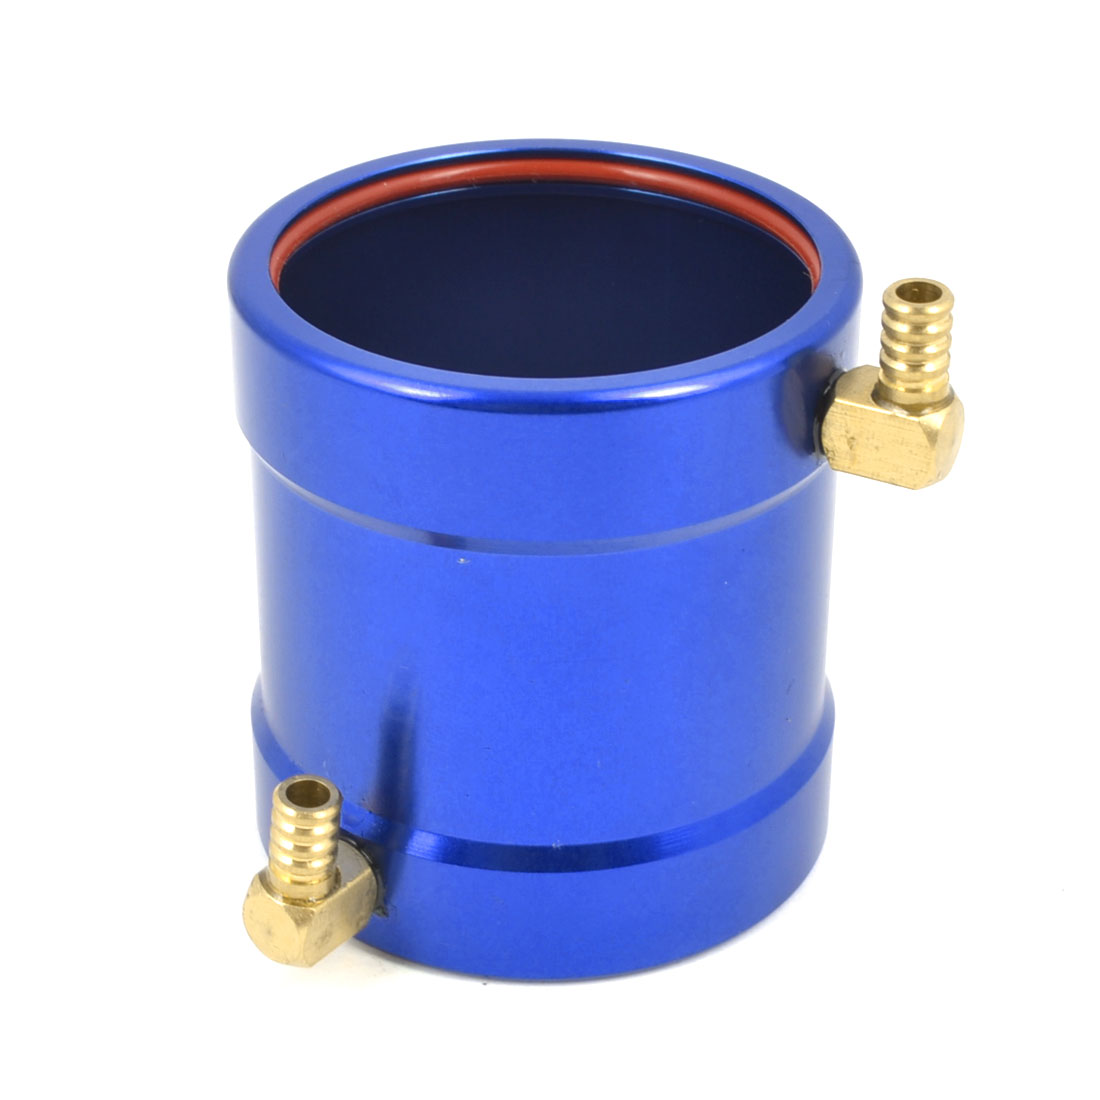 40mm x 50mm Aluminum Blue Anodized Water Cooling Jacket for B40 Brushless Boat Motor